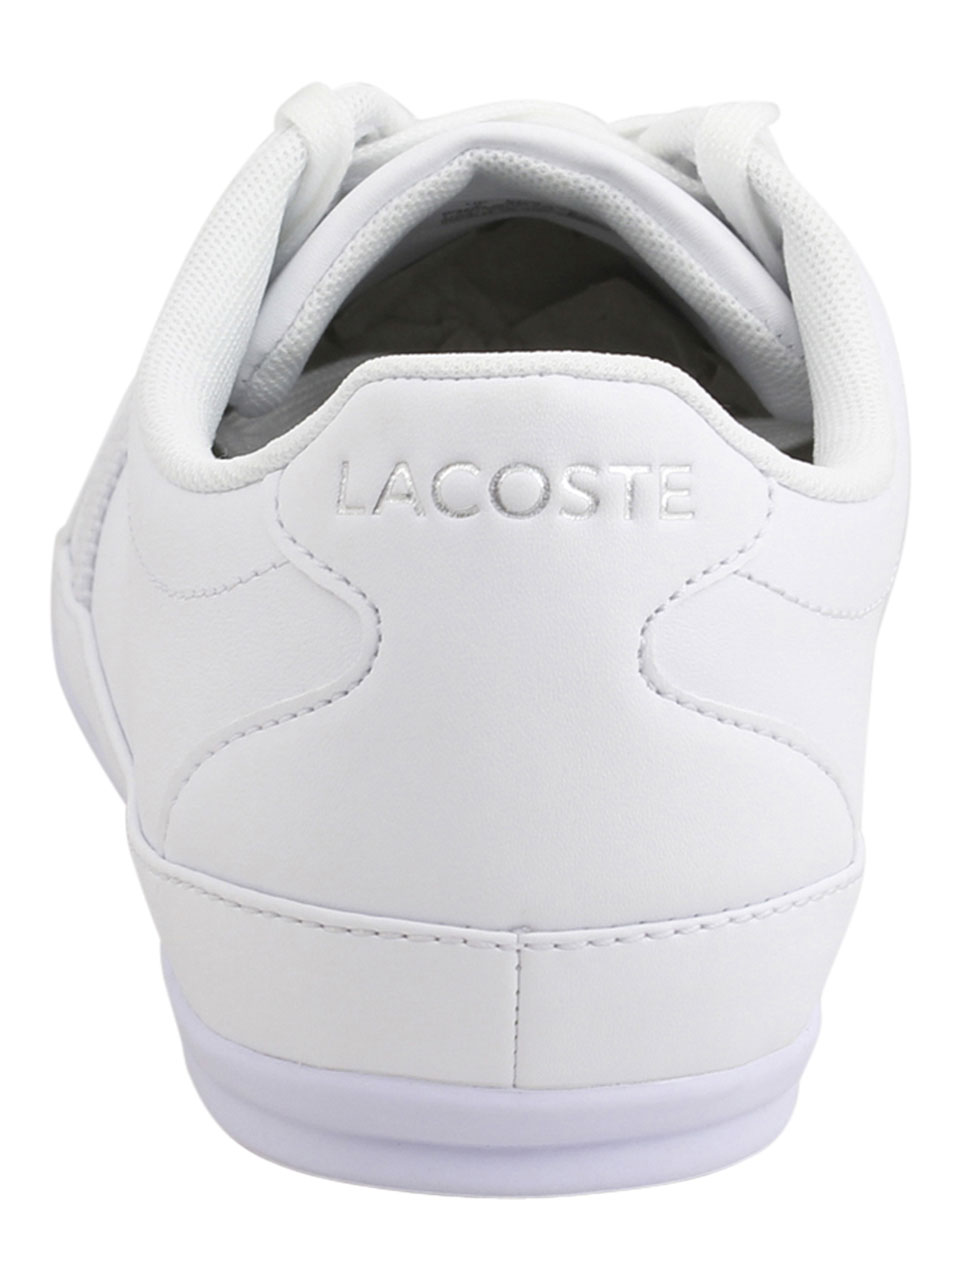 Lacoste-Men-039-s-Misano-Sport-118-Sneakers-Shoes thumbnail 22